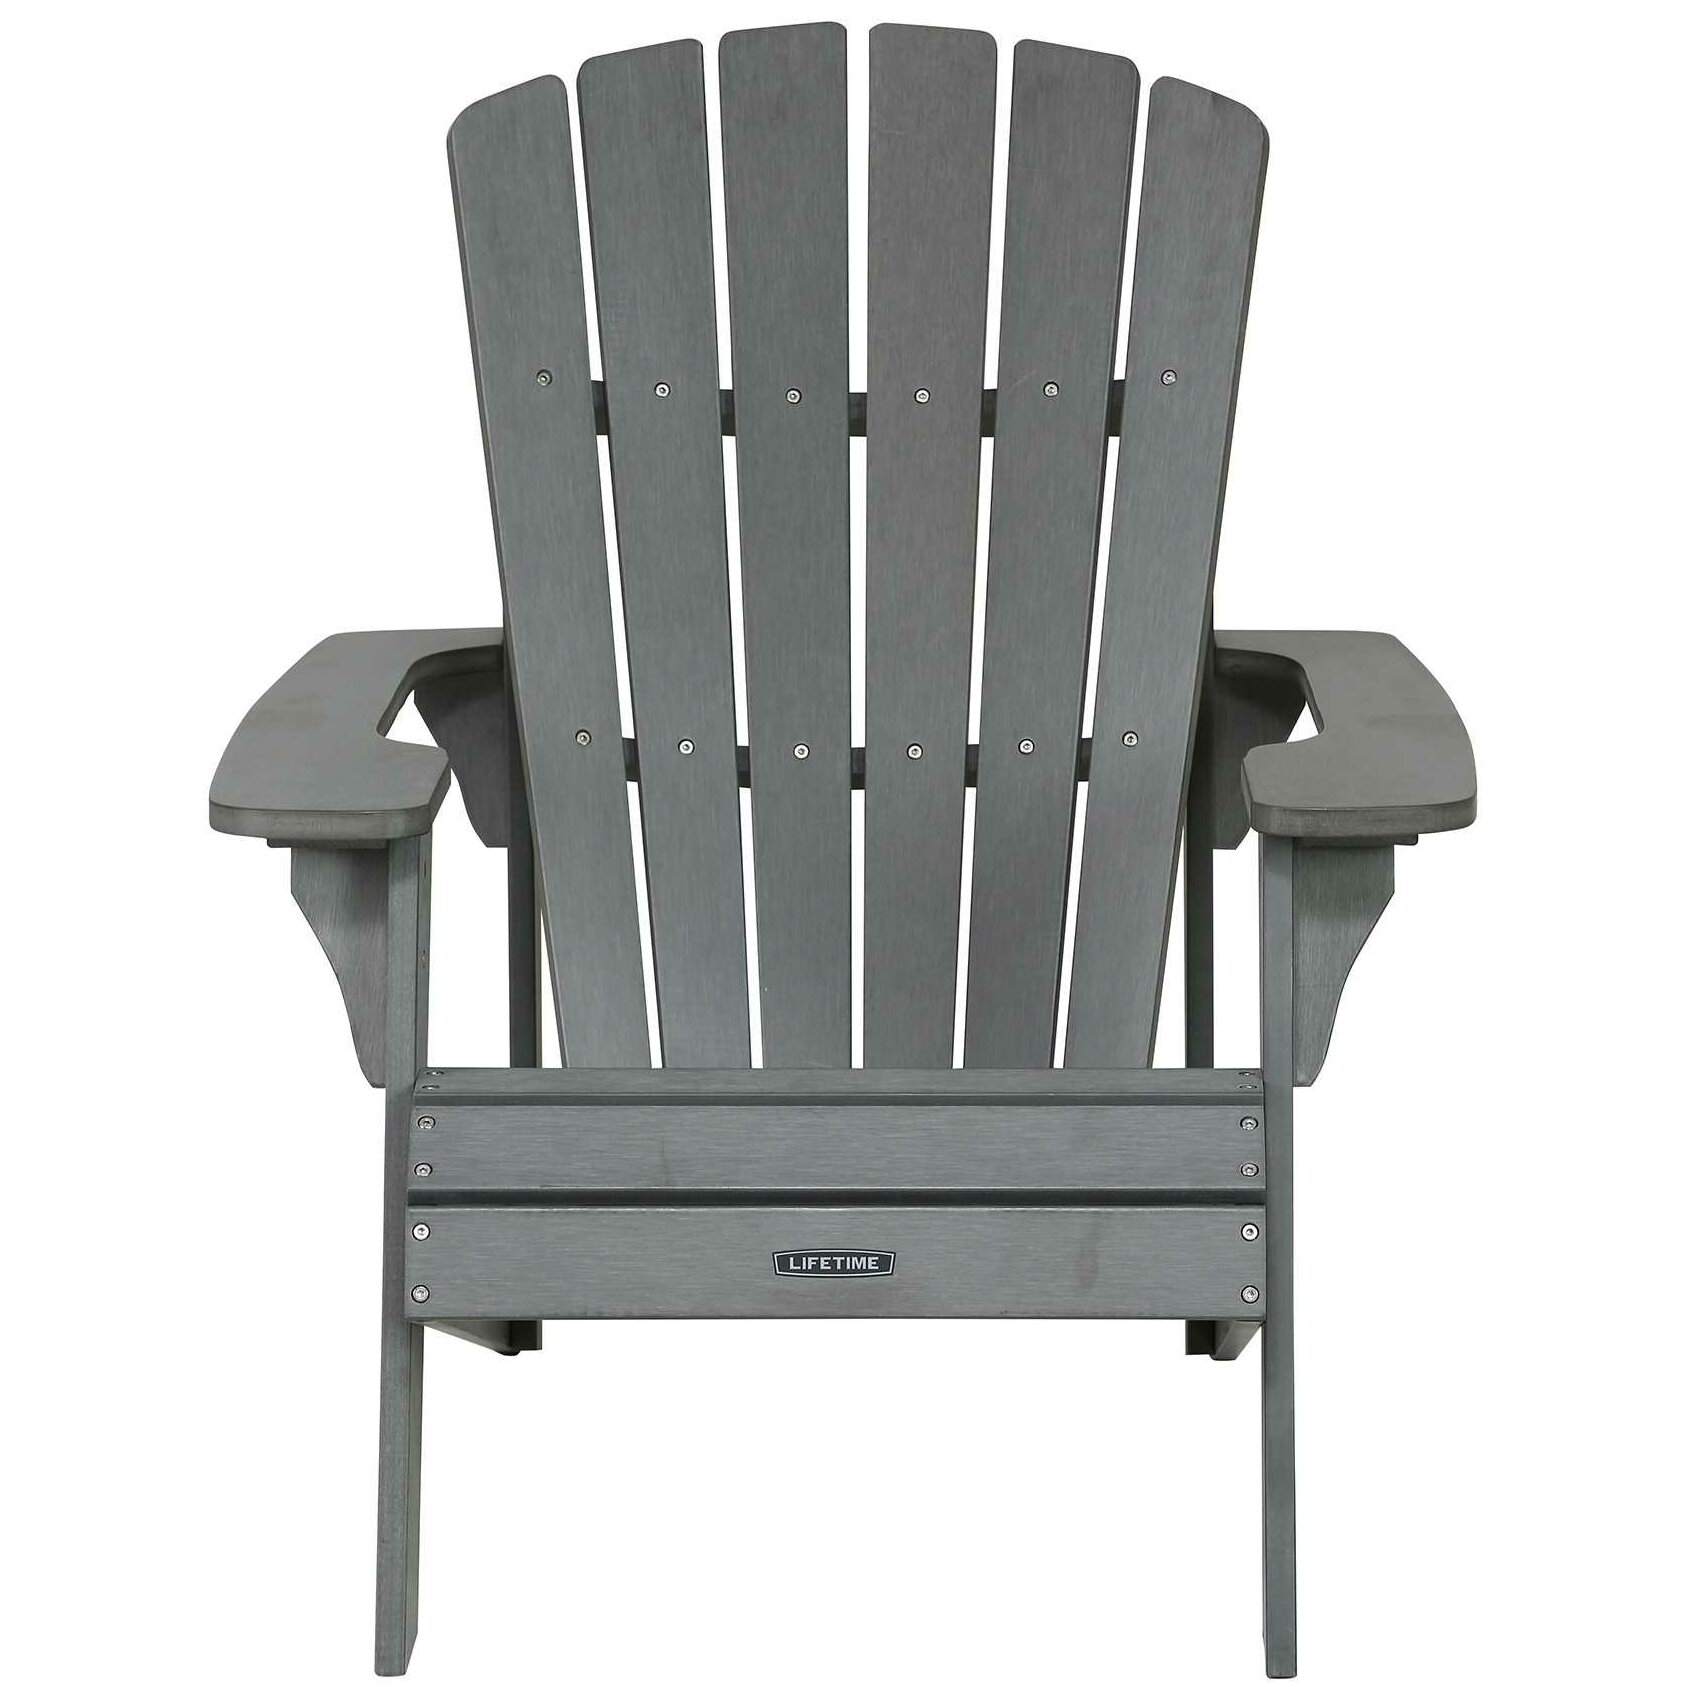 Superbe Lifetime Plastic Adirondack Chair U0026 Reviews | Wayfair